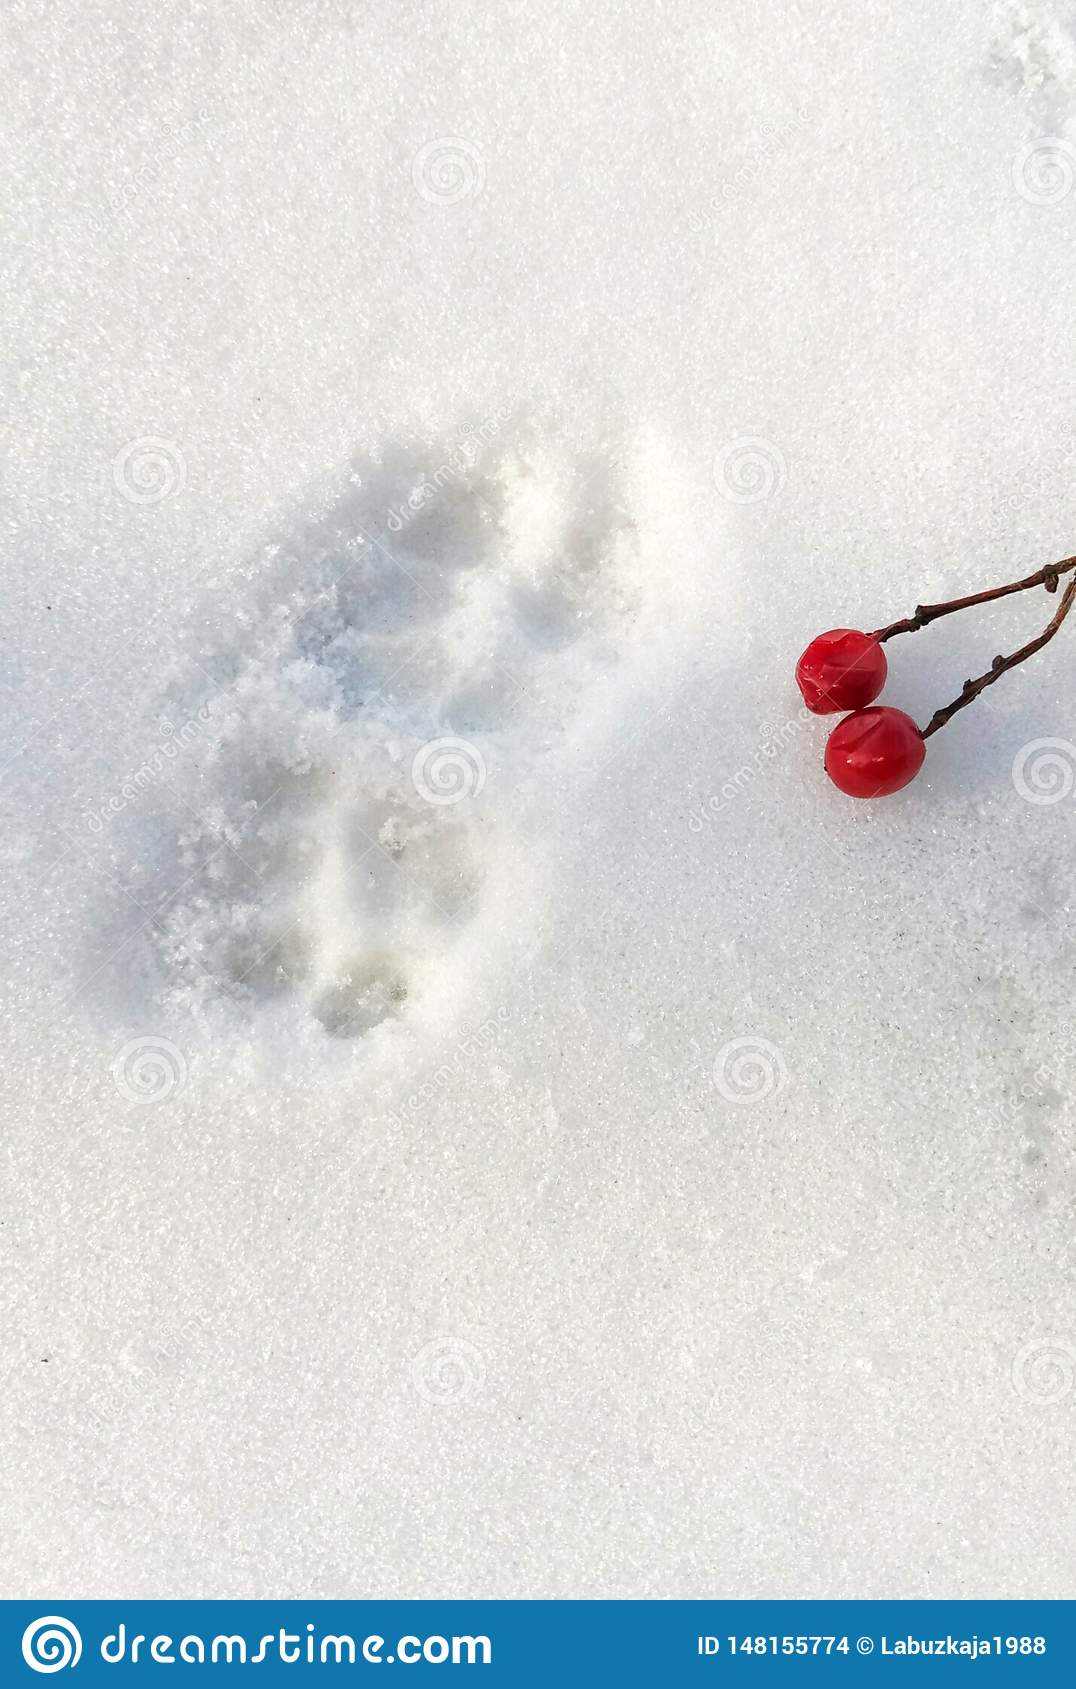 Traces of paws of a cat and berries of viburnum